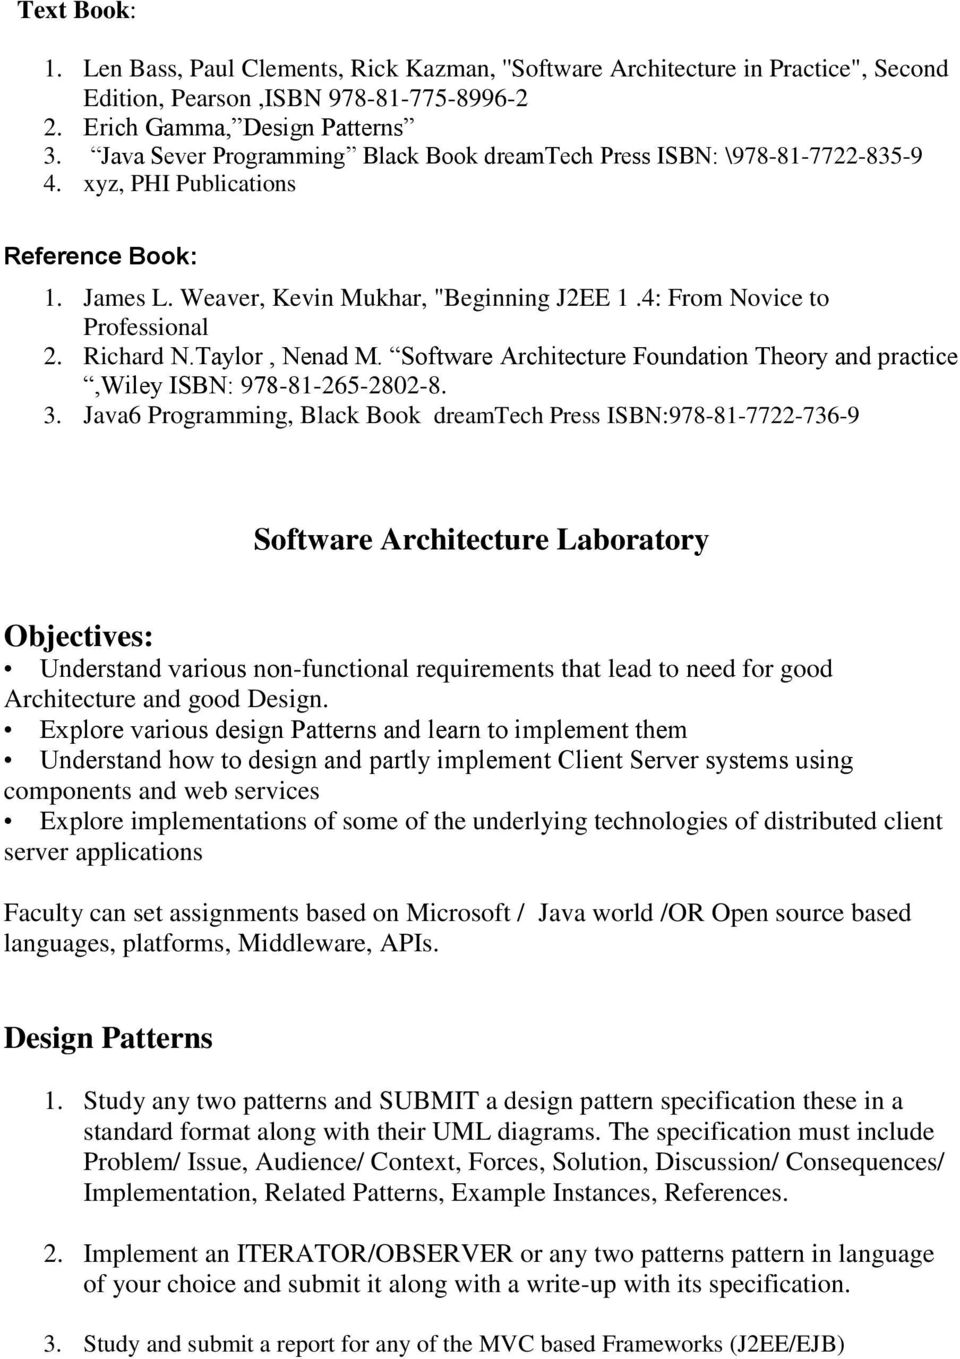 4: From Novice to Professional 2. Richard N.Taylor, Nenad M. Software Architecture Foundation Theory and practice,wiley ISBN: 978-81-25-2802-8. 3.